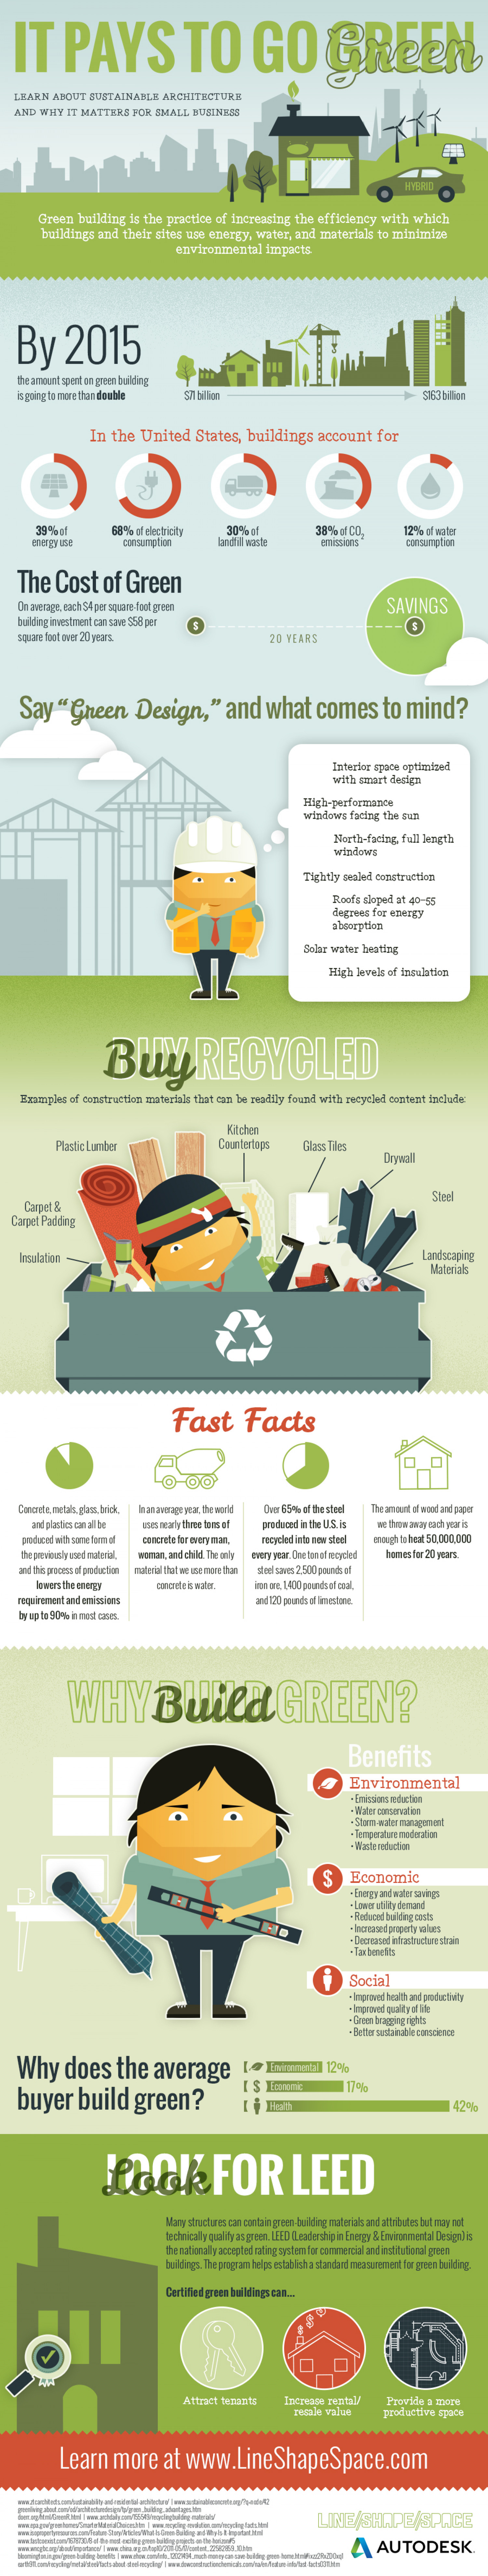 It Pays to Go Green: Sustainable Architecture  Infographic